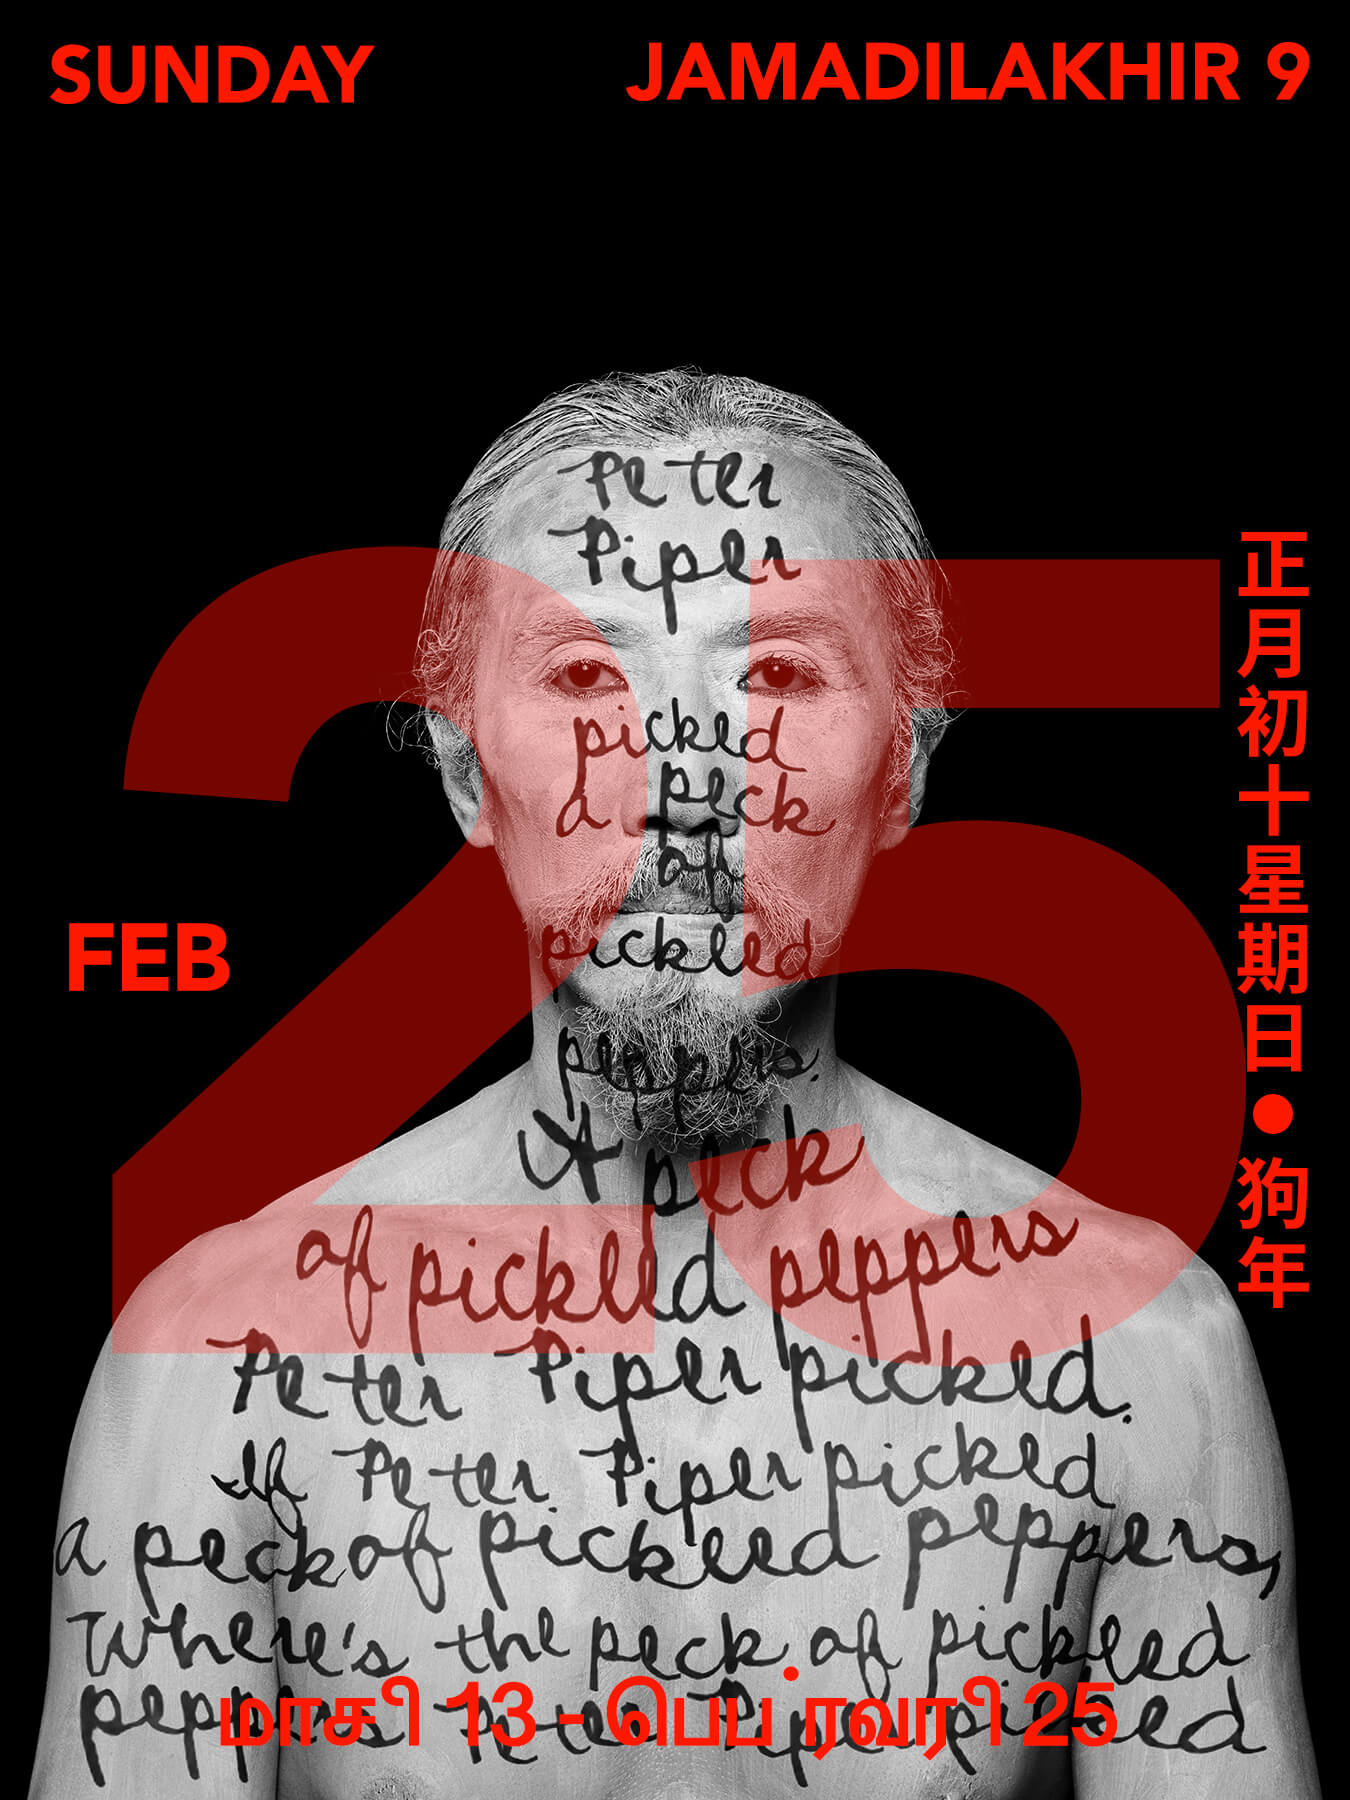 25 Feb 2018 Derong is covered in white body paint and has 'Peter Piper picked a peck of pickled peppers' handwritten all over himself